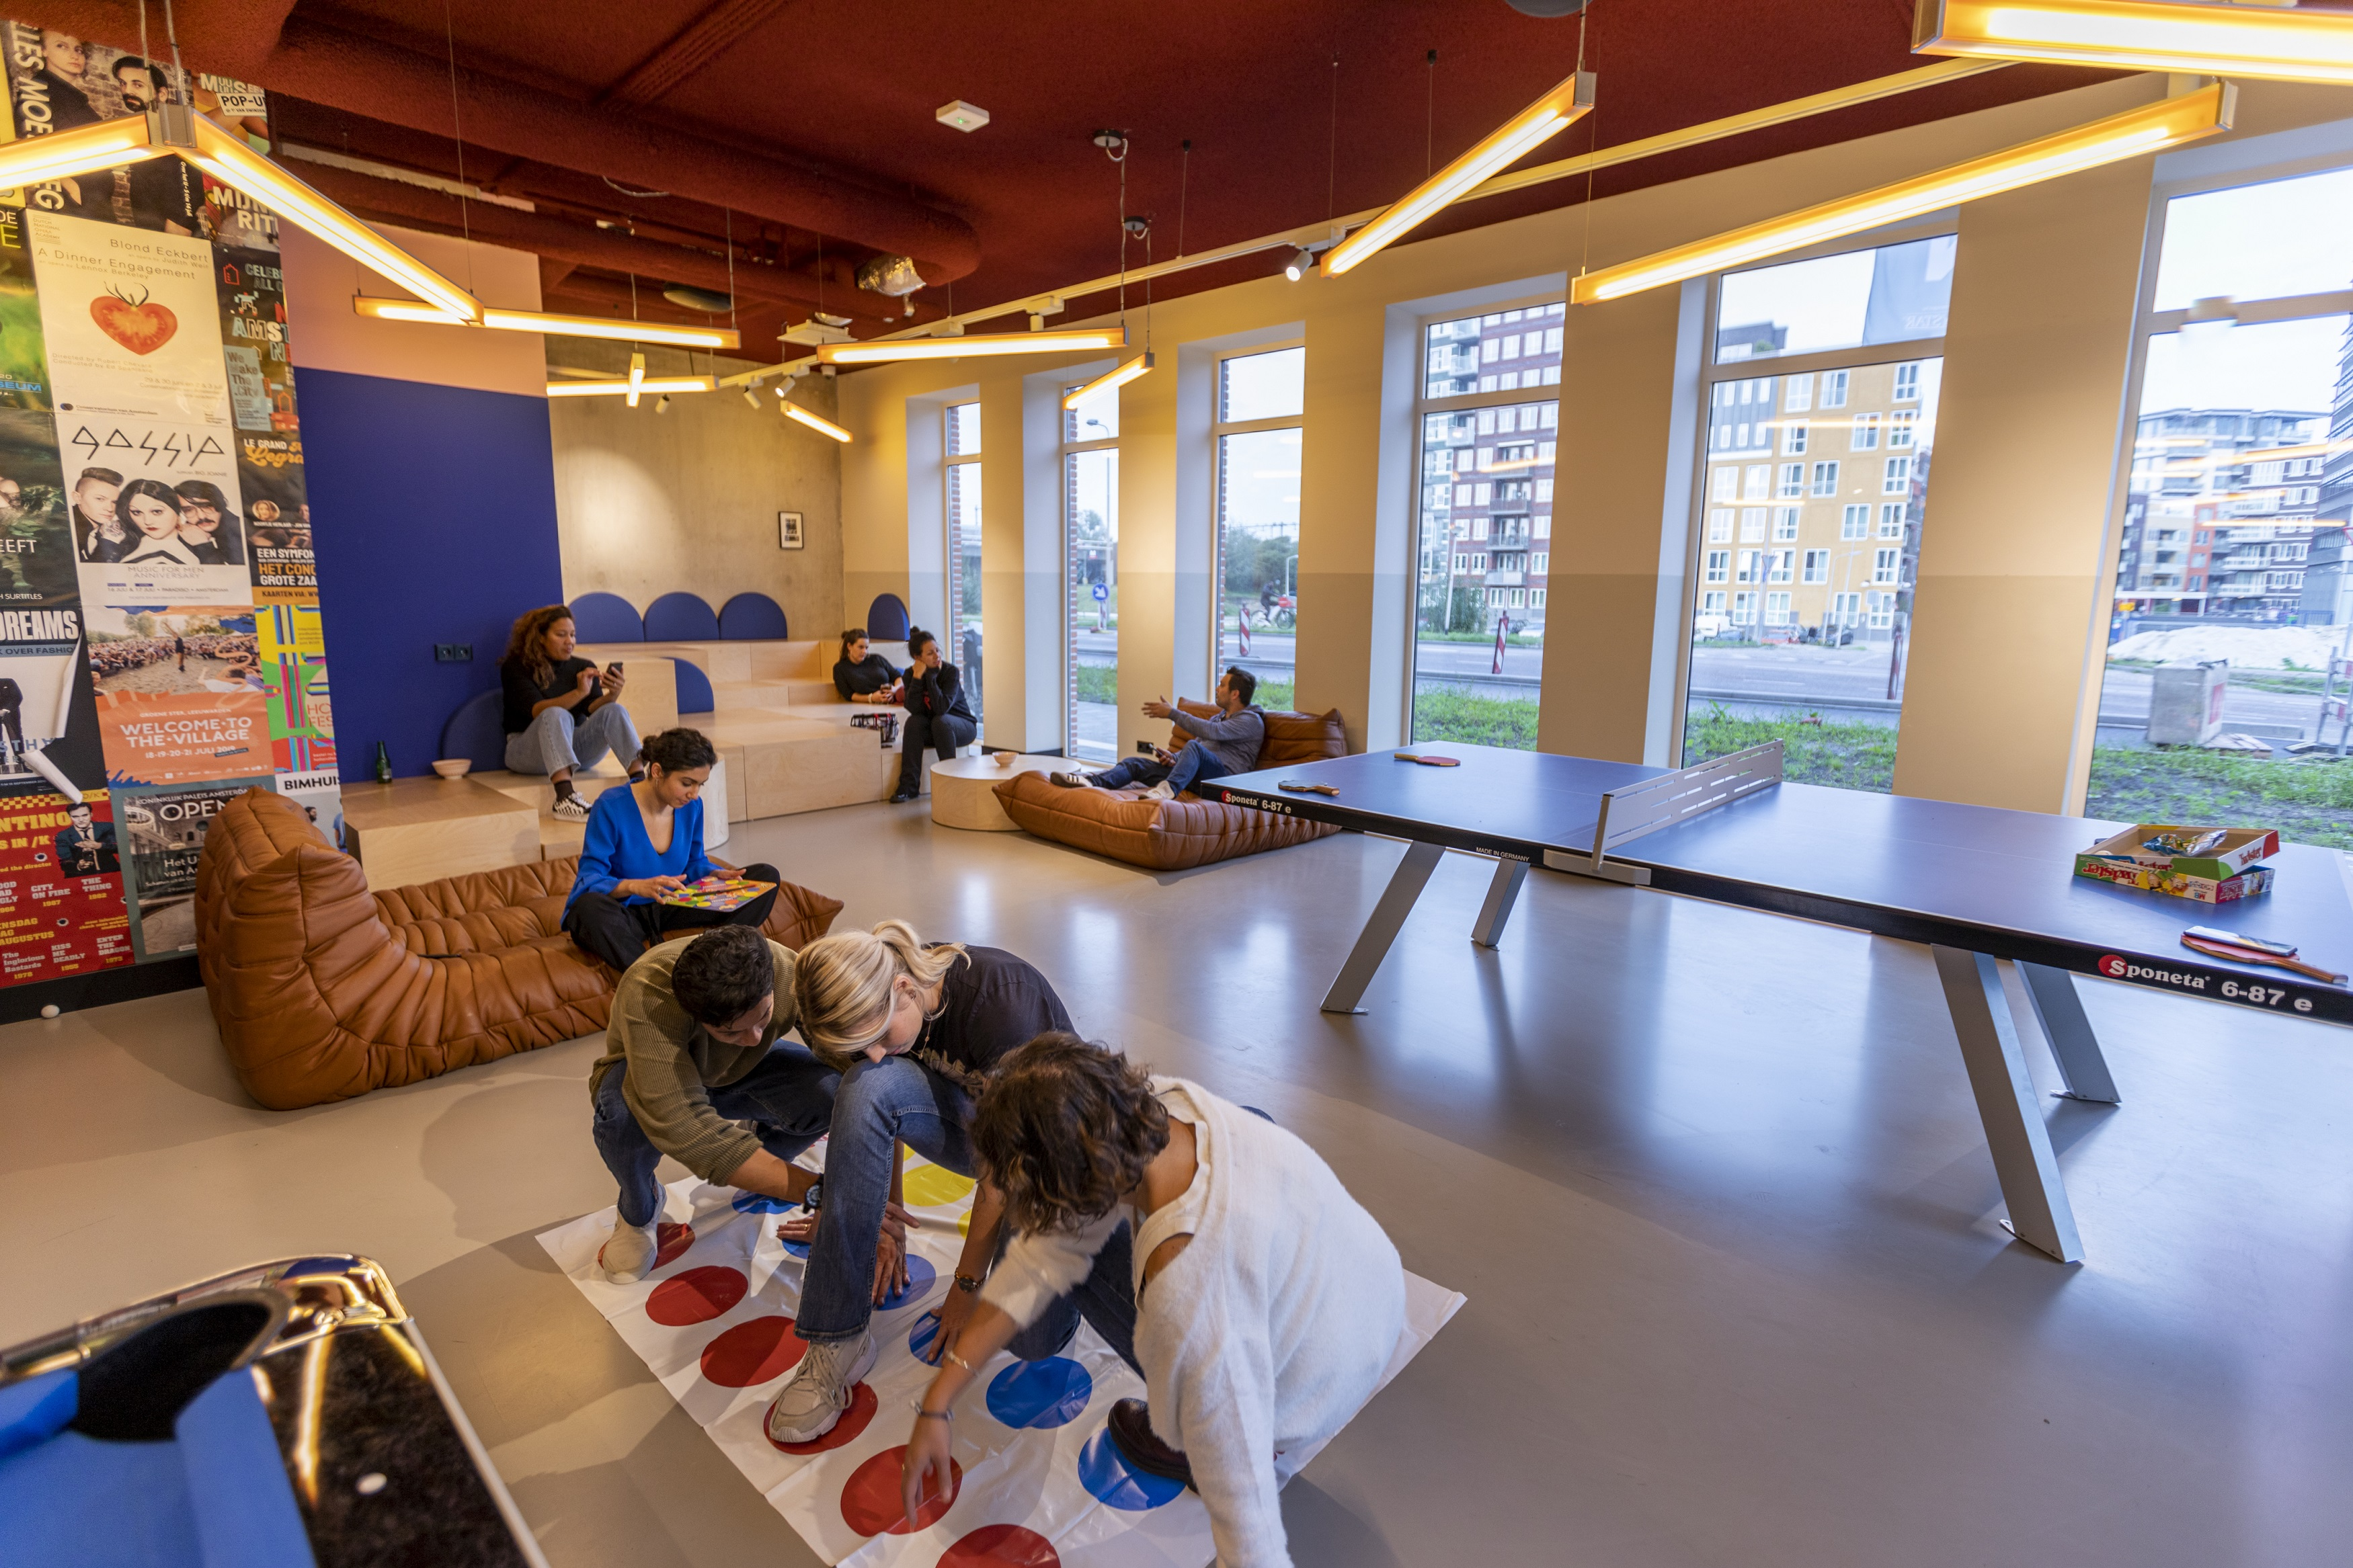 Residents playing twister in the game room of OurDomain Amsterdam Diemen